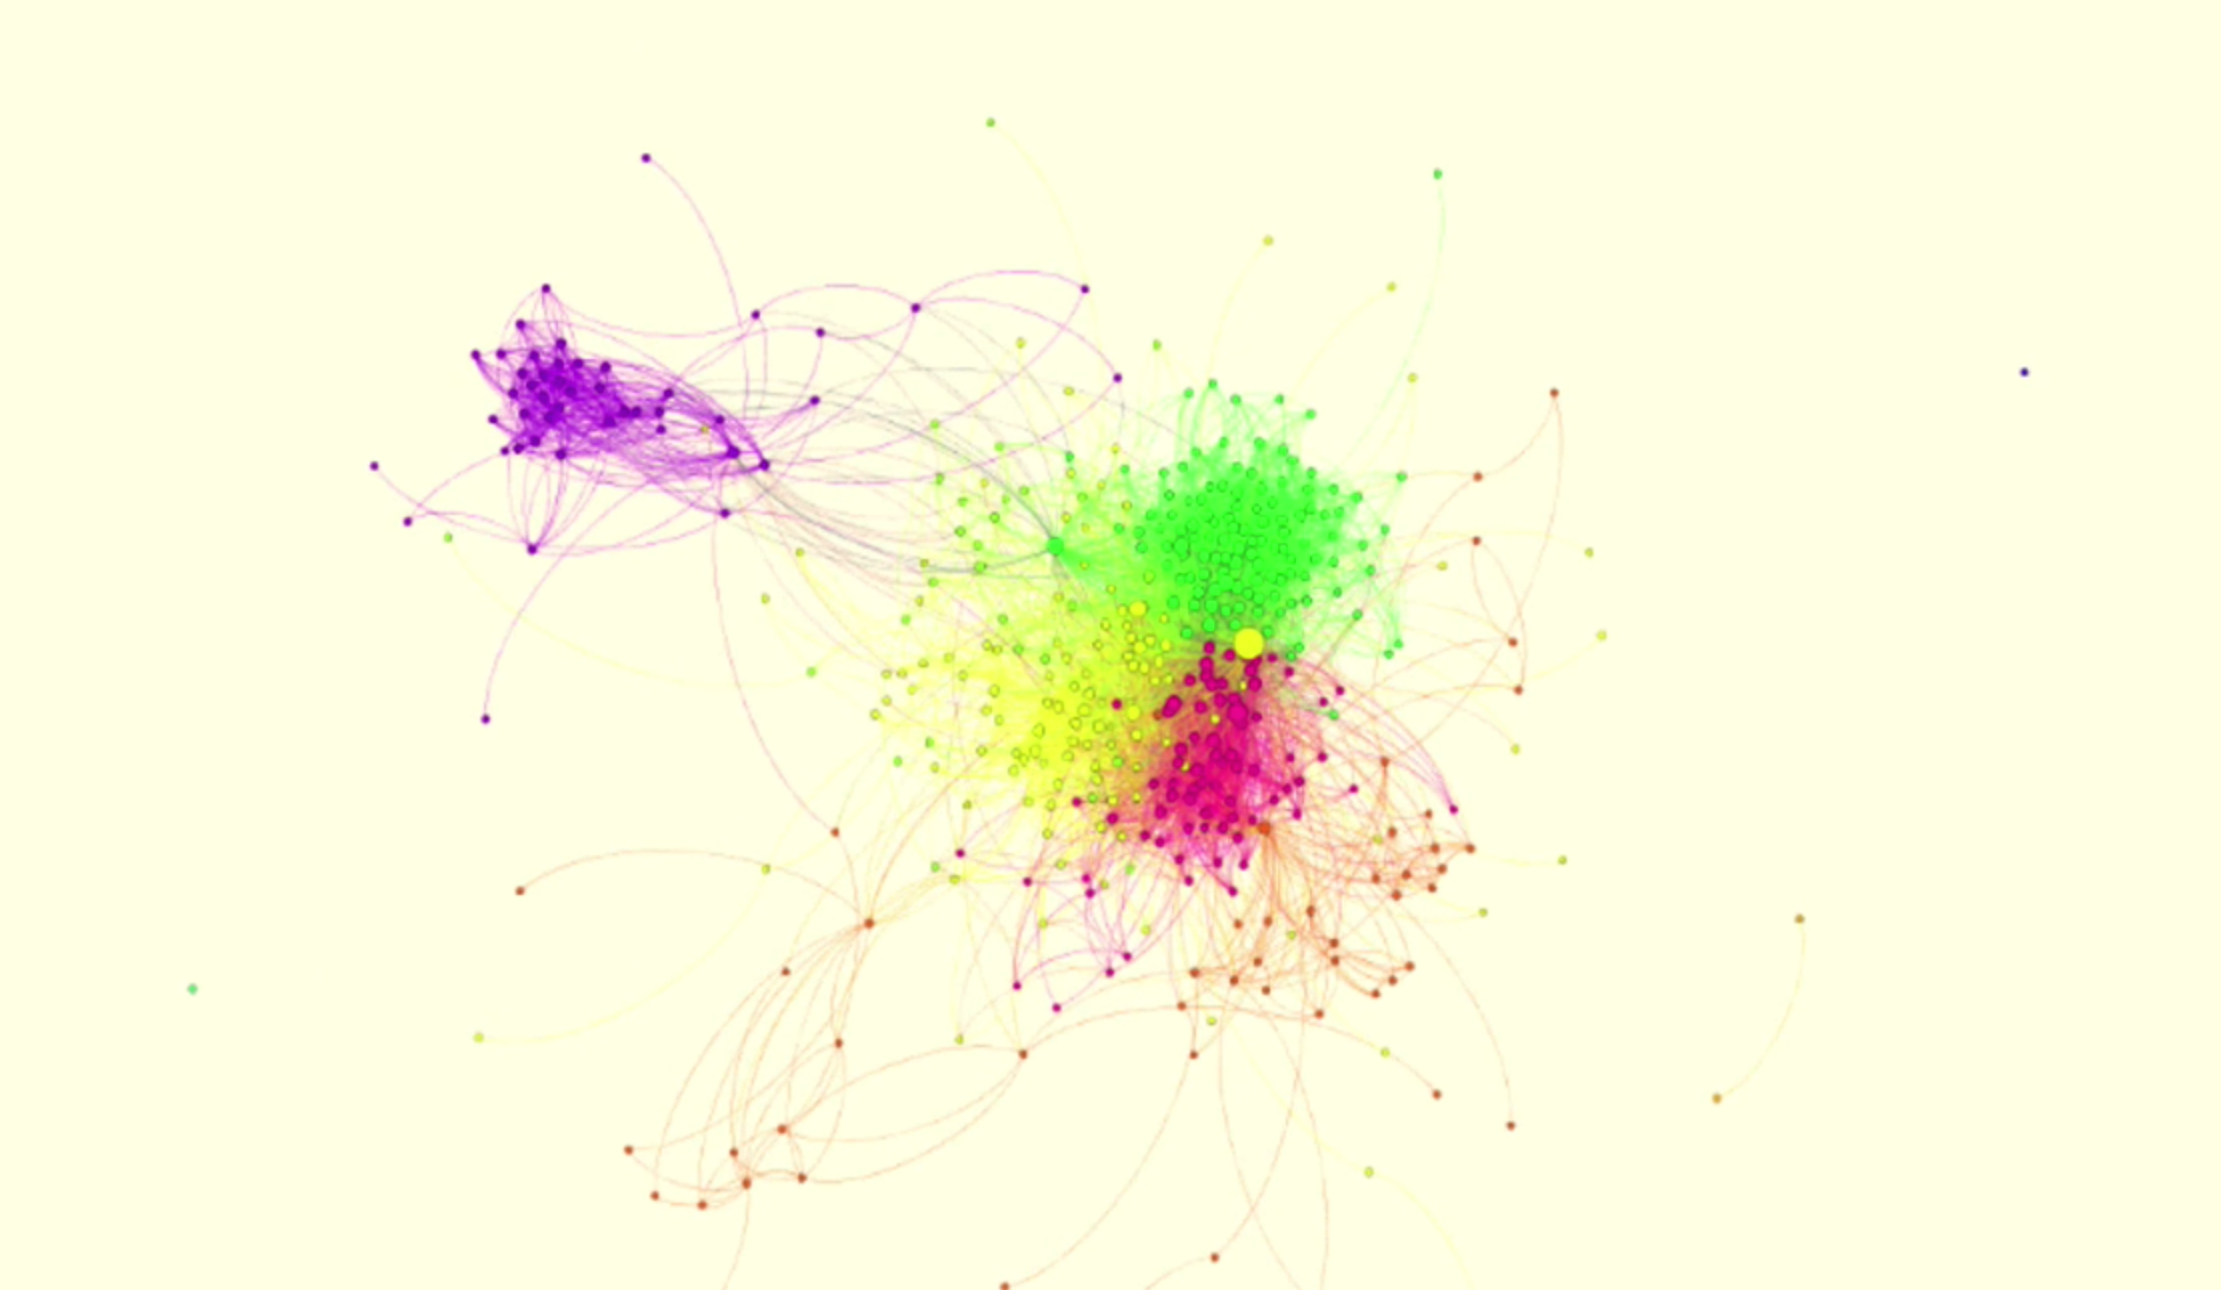 graph of nodes created in gephi